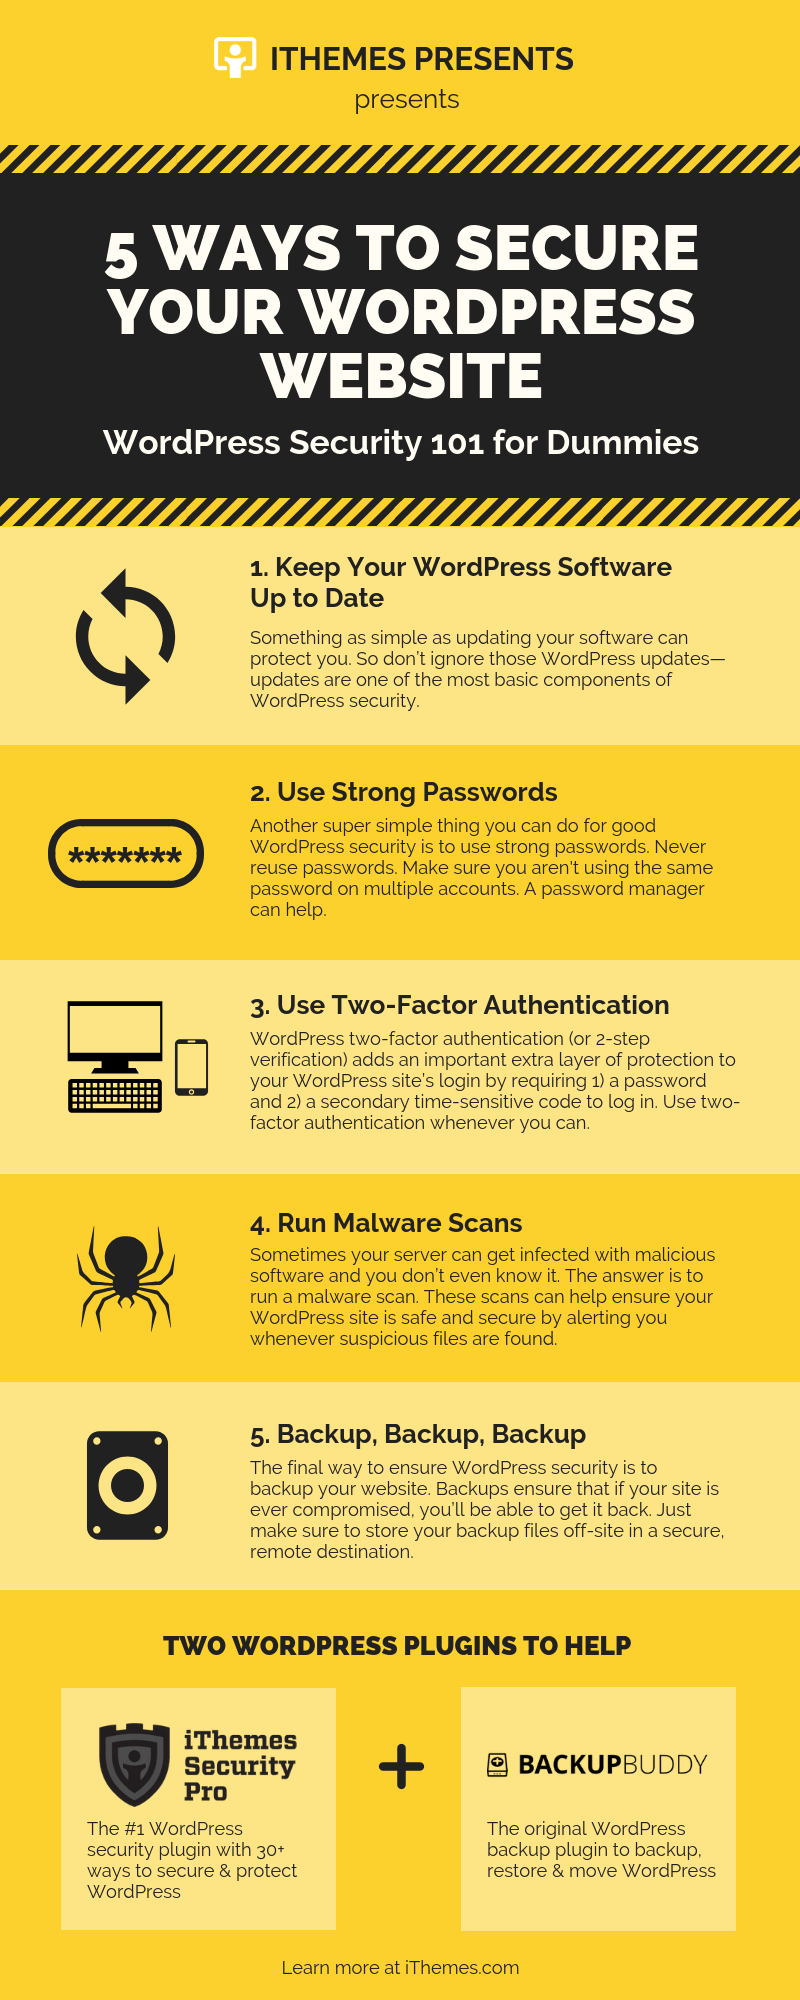 Ways to Secure Your WordPress Website Infographic